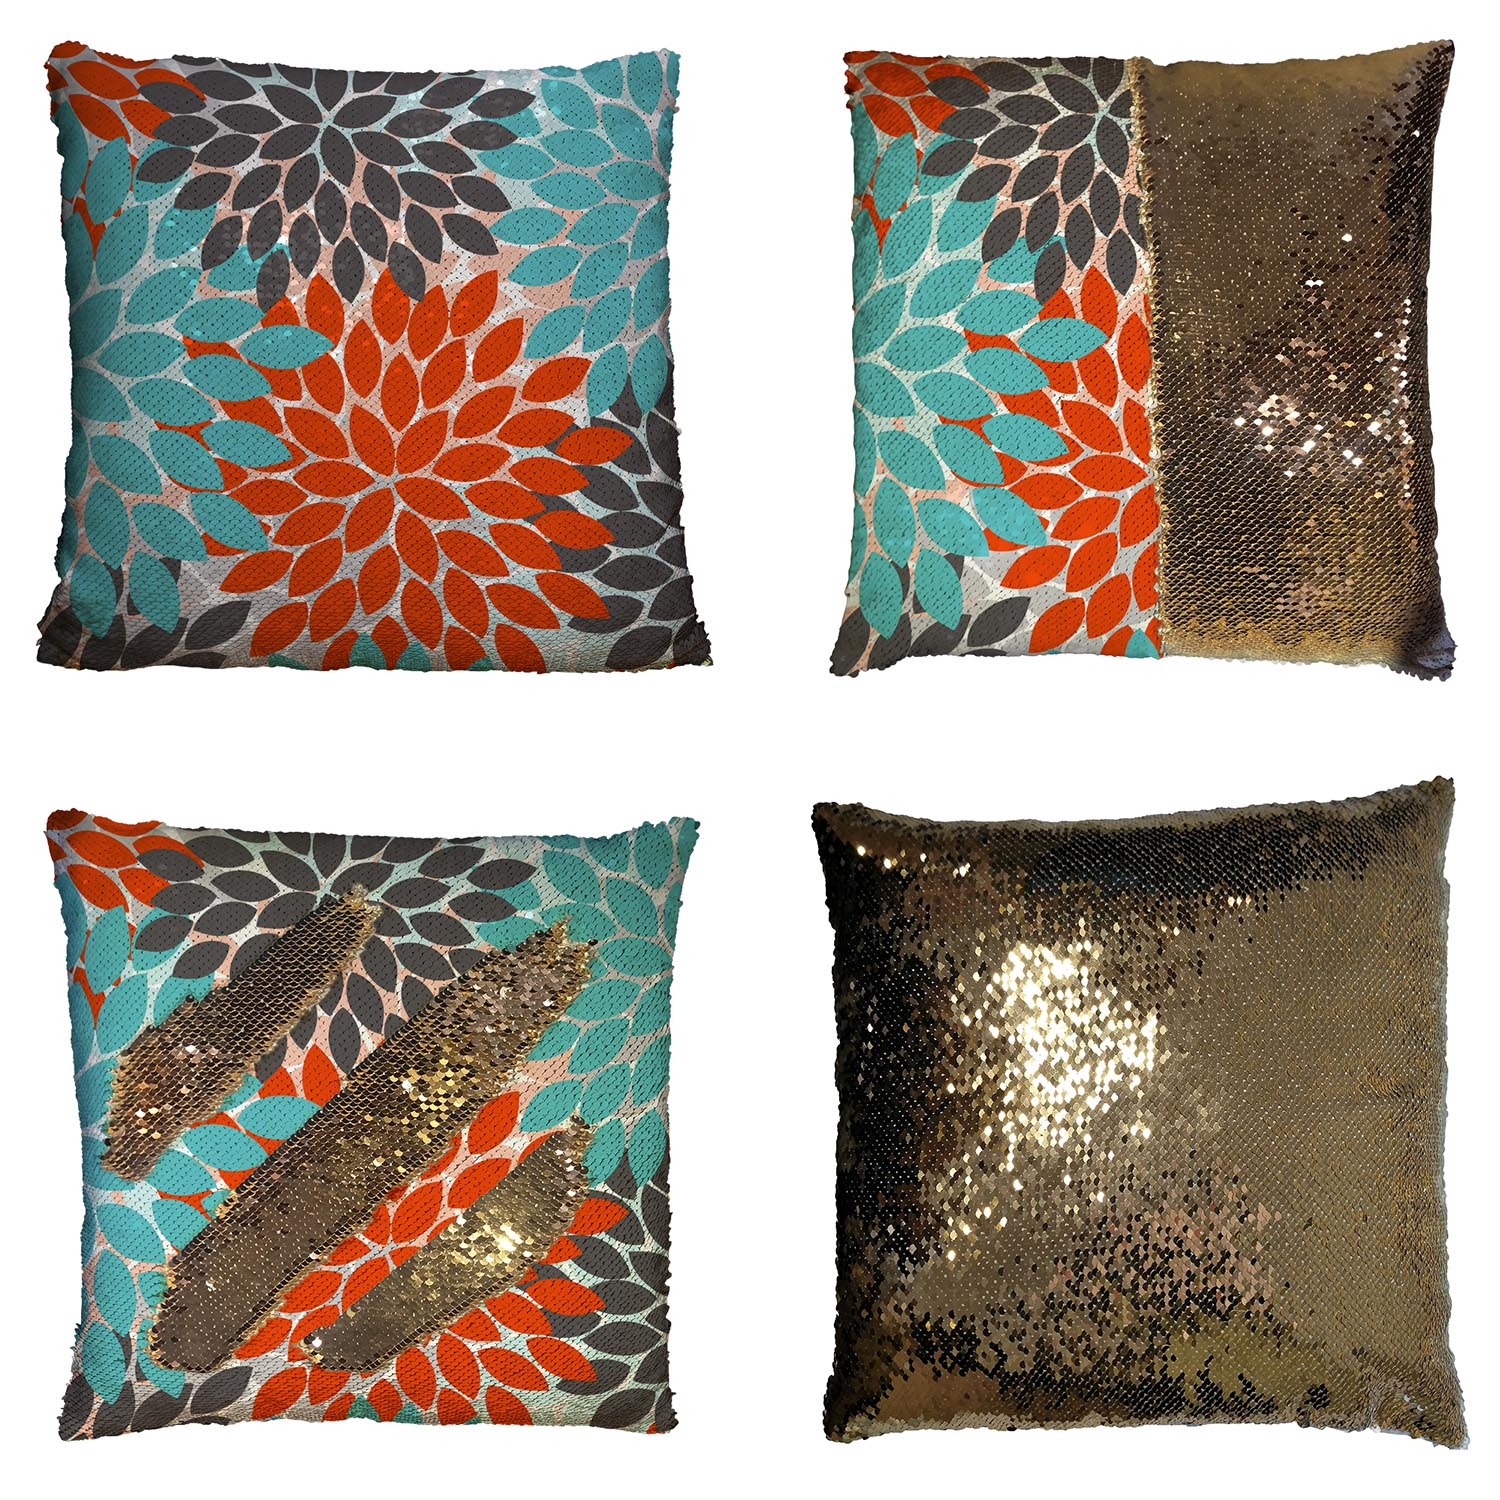 GCKG Multicolor Dahlia Floral Pillowcase,Multicolor Dahlia Floral Reversible Mermaid Sequin Pillow Case Home Decor Cushion Cover 16x16 inches